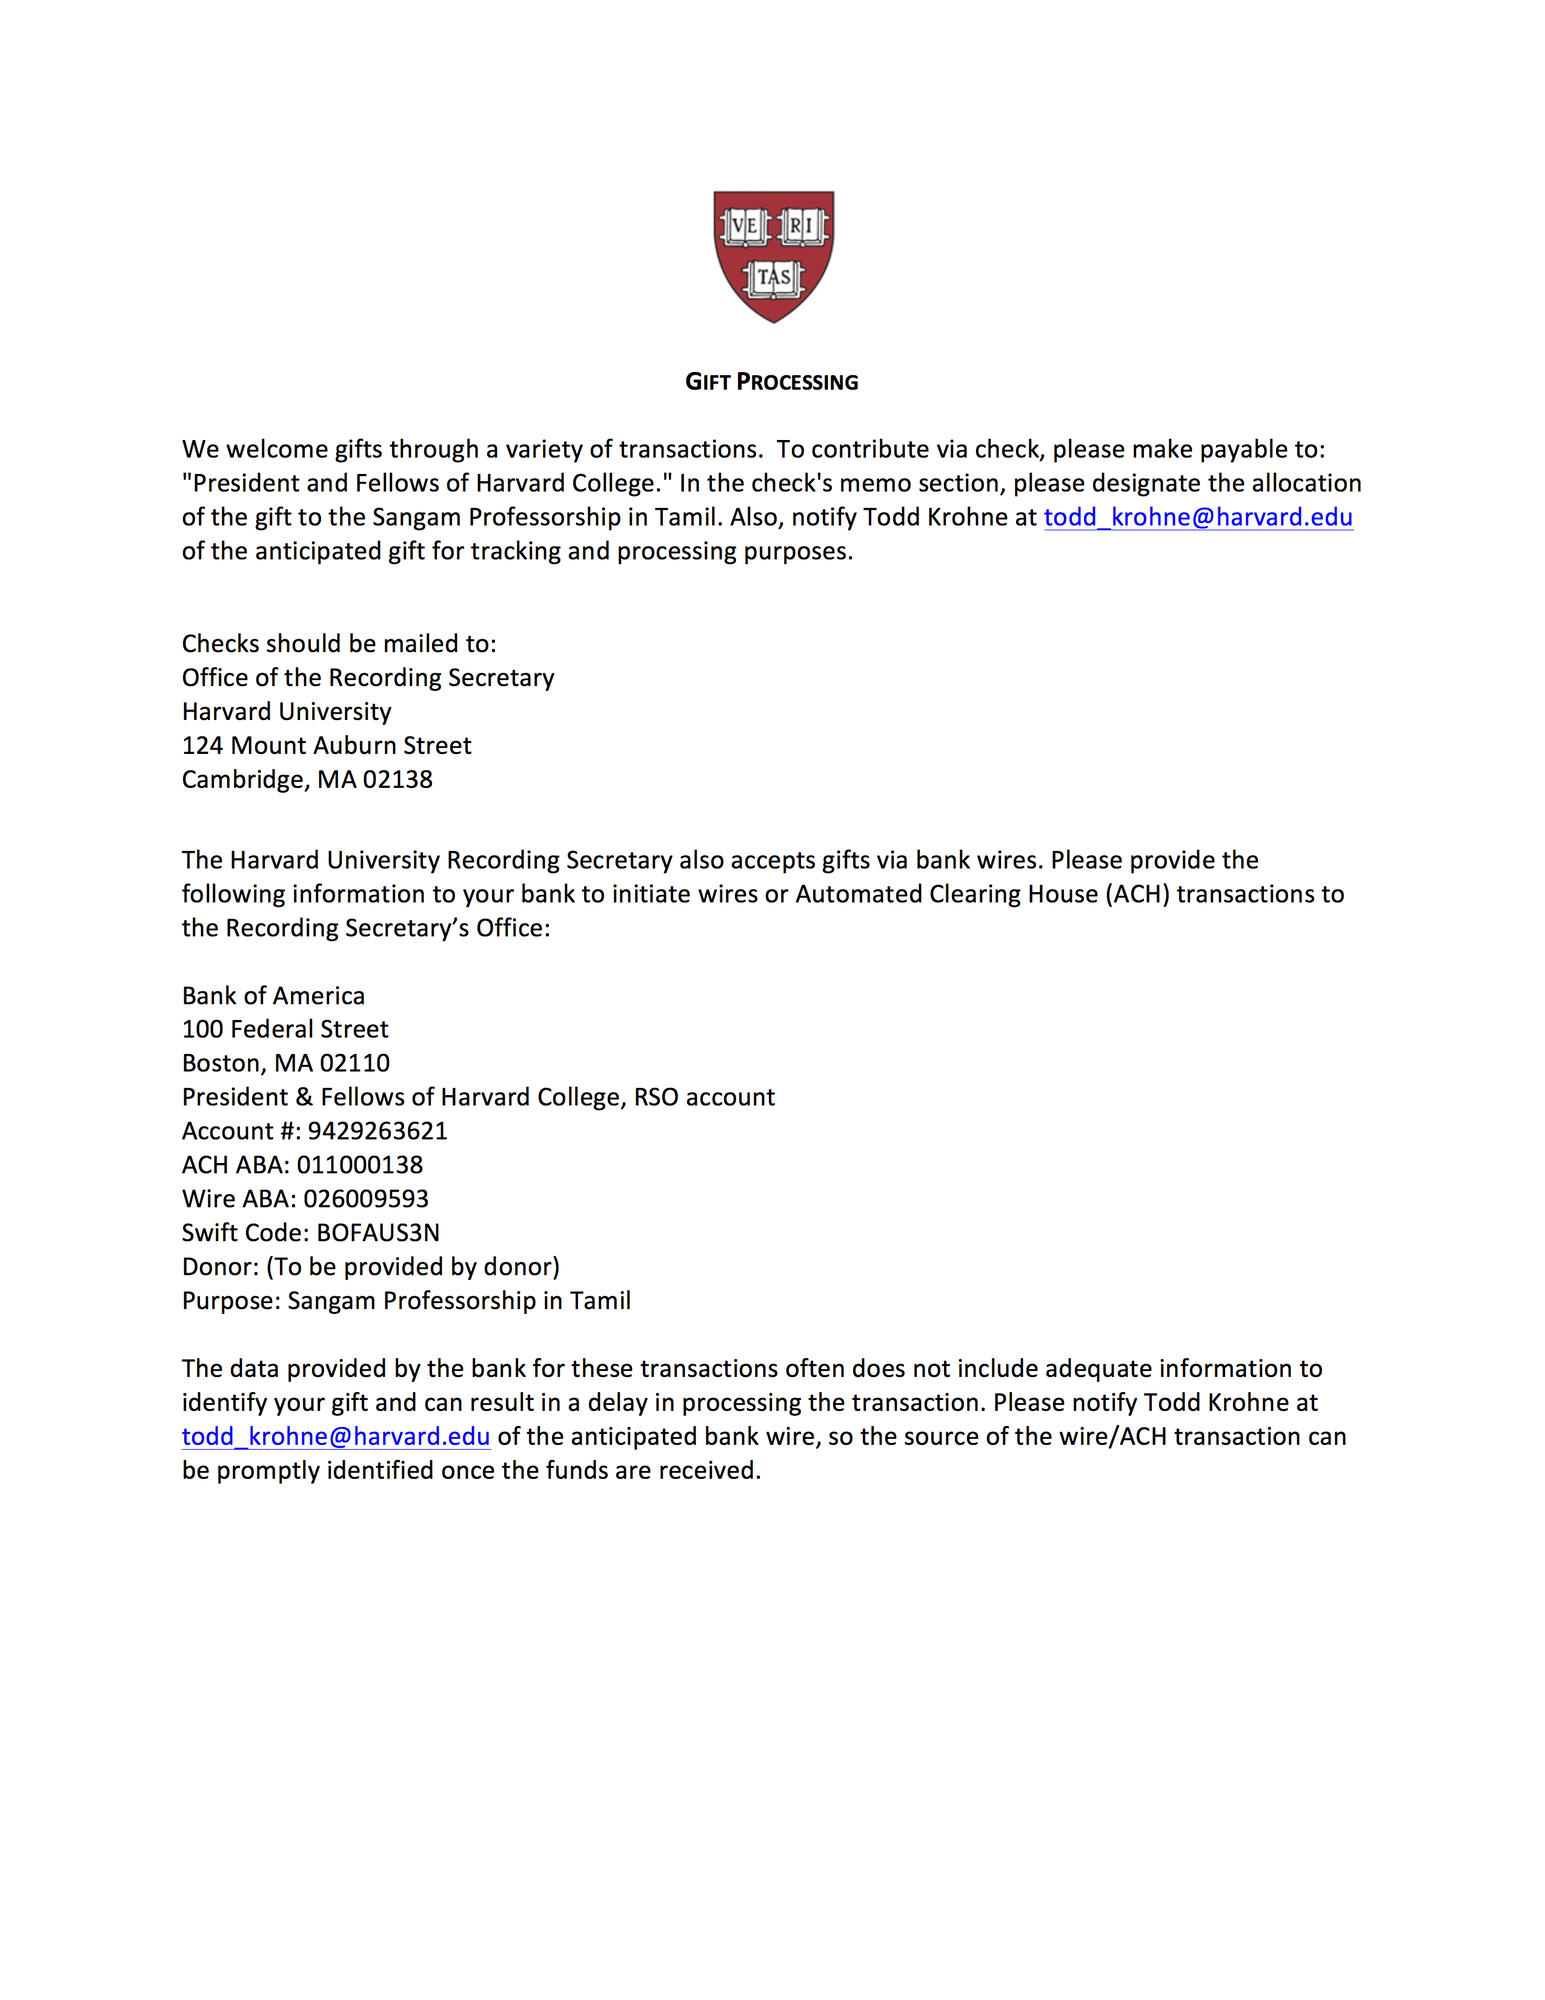 Instructions for sending your pledge agreement and your gifts to Harvard University